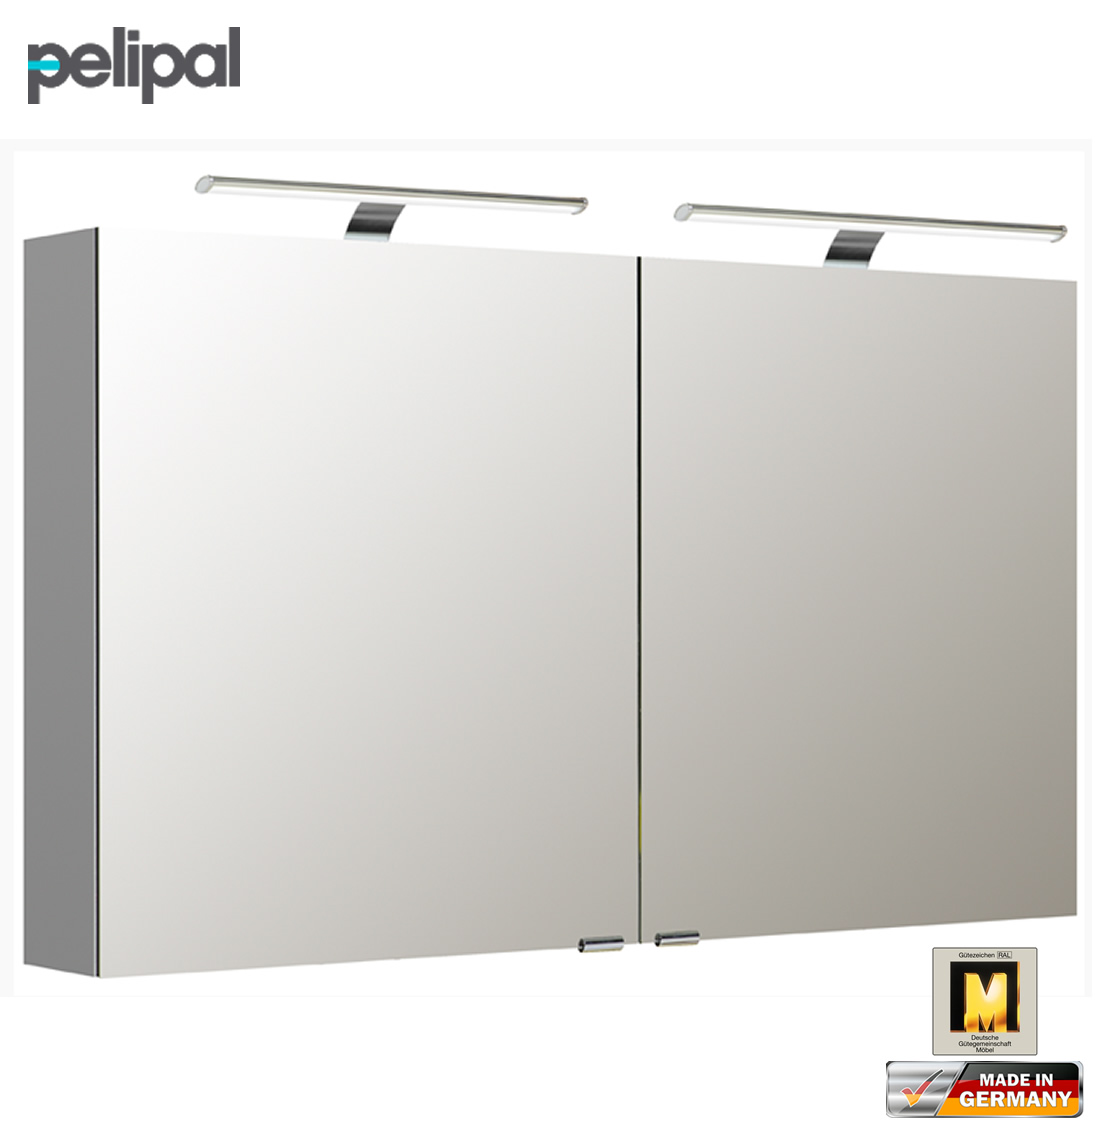 pelipal neutraler spiegelschrank 120 cm mit led aufsatzleuchten s5 spsd 20 impuls home. Black Bedroom Furniture Sets. Home Design Ideas